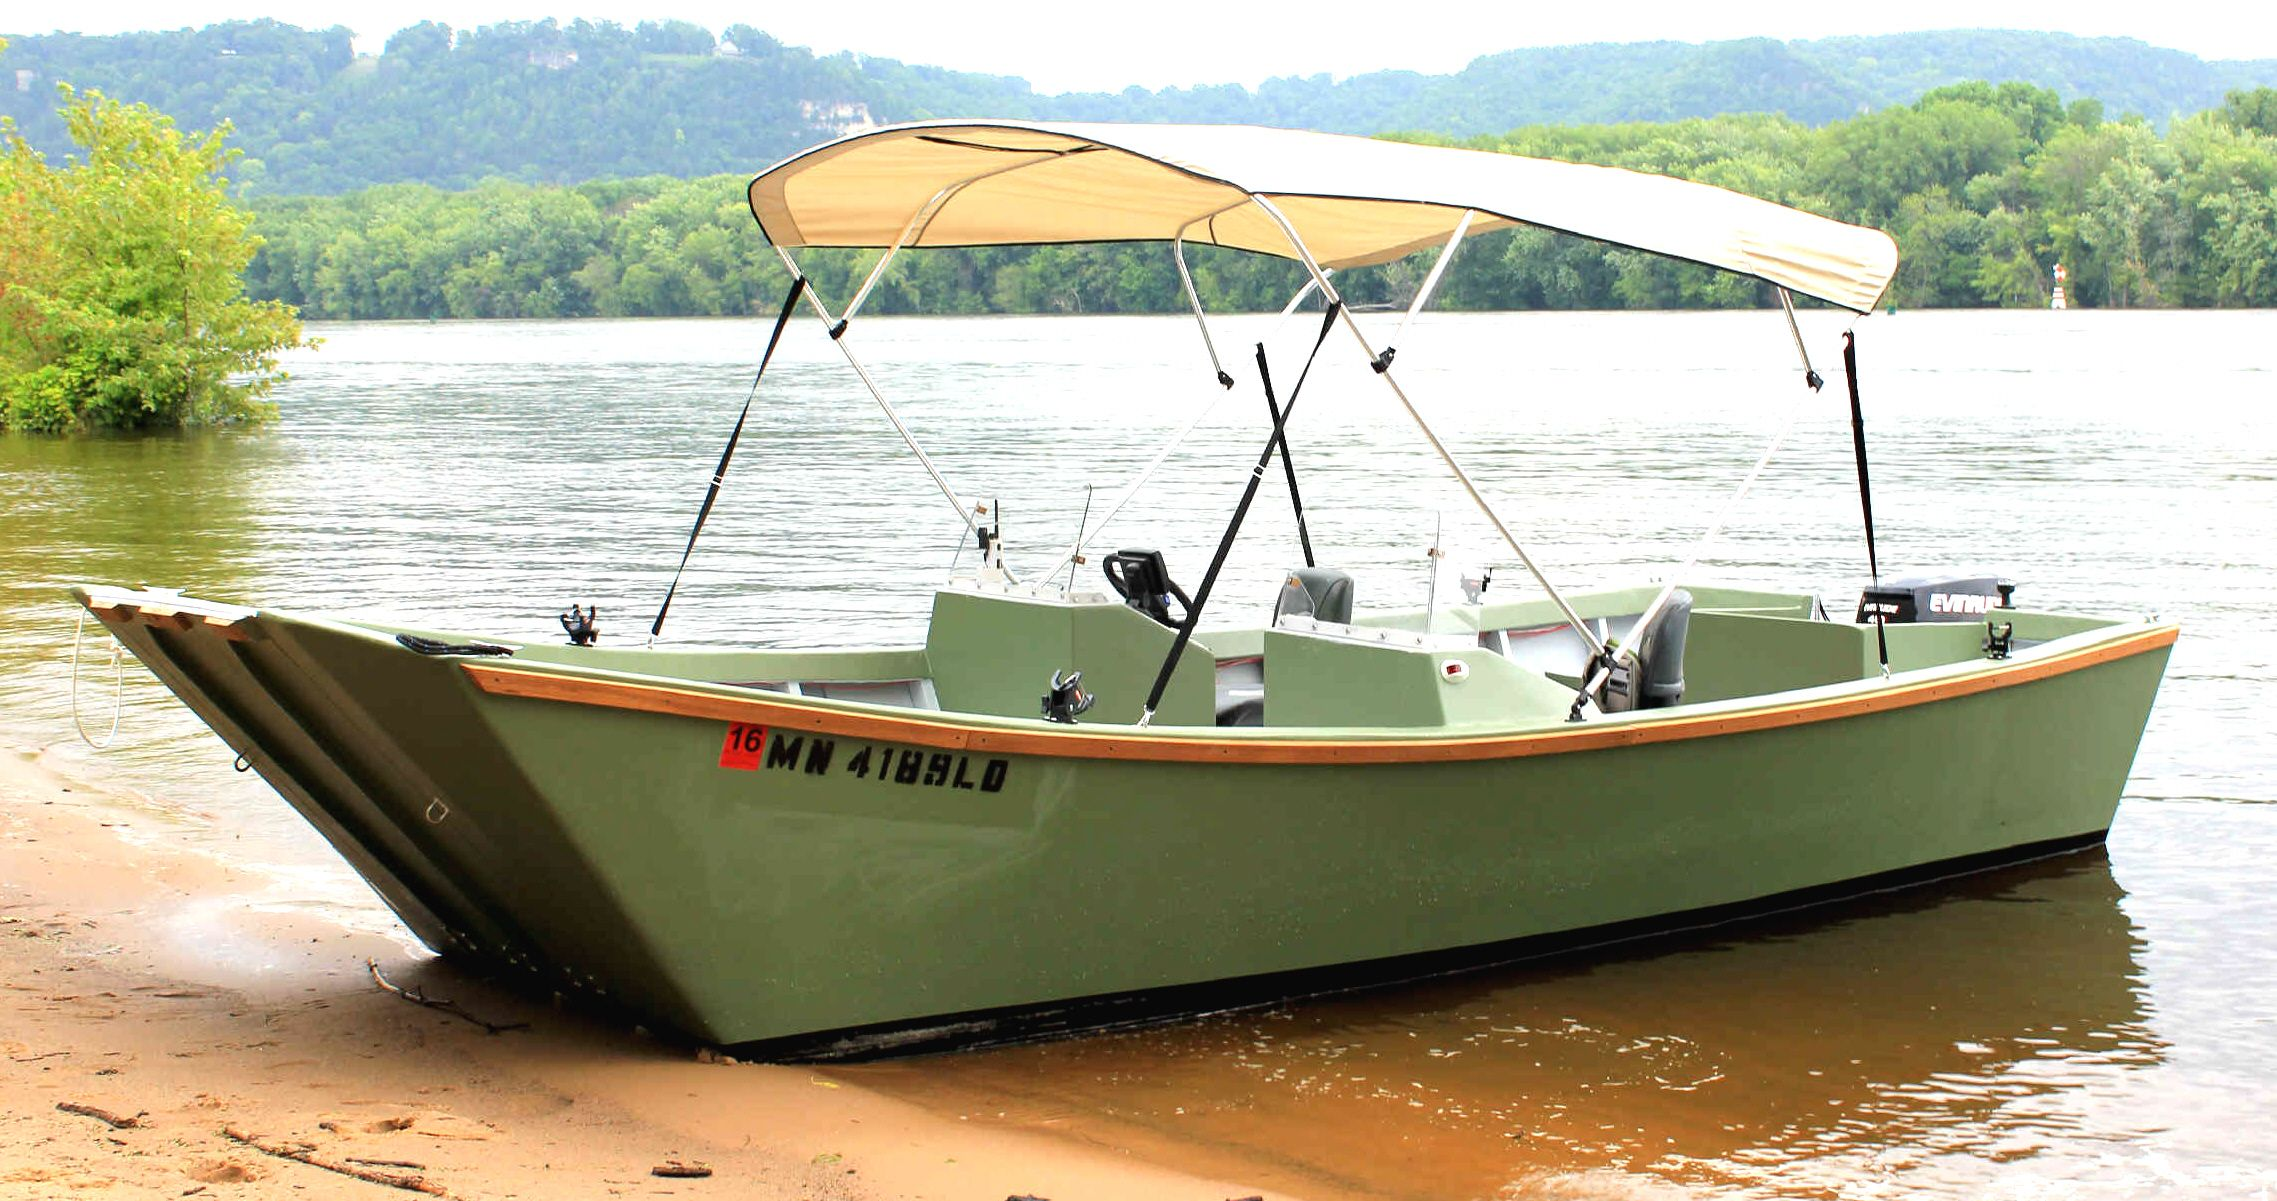 Easy To Build Garvey Wood Boat Plans | Survivalist | Pinterest | Boat plans, Wood boats and Boating